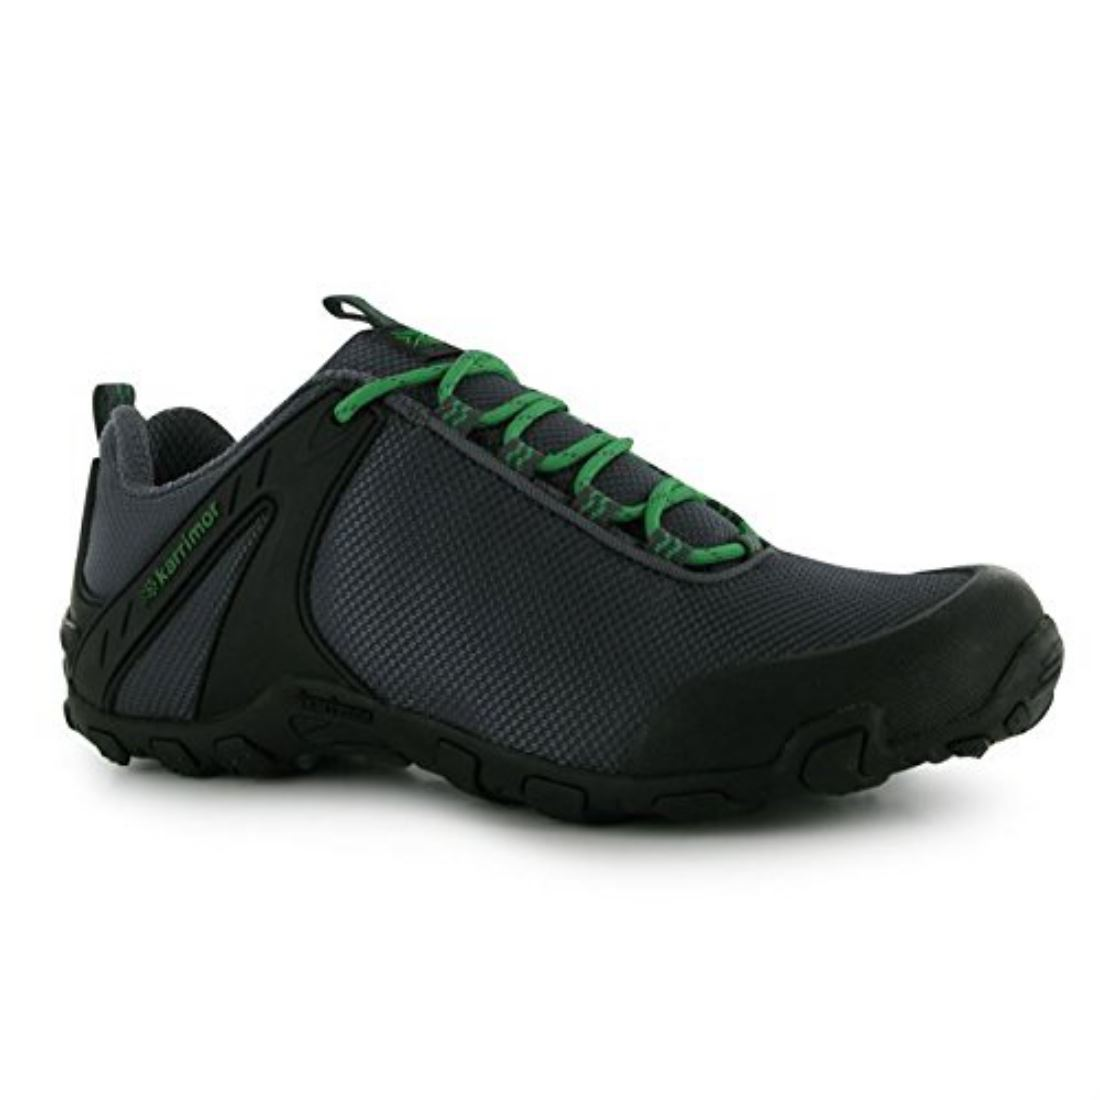 Karrimor Waterproof Walking Shoes